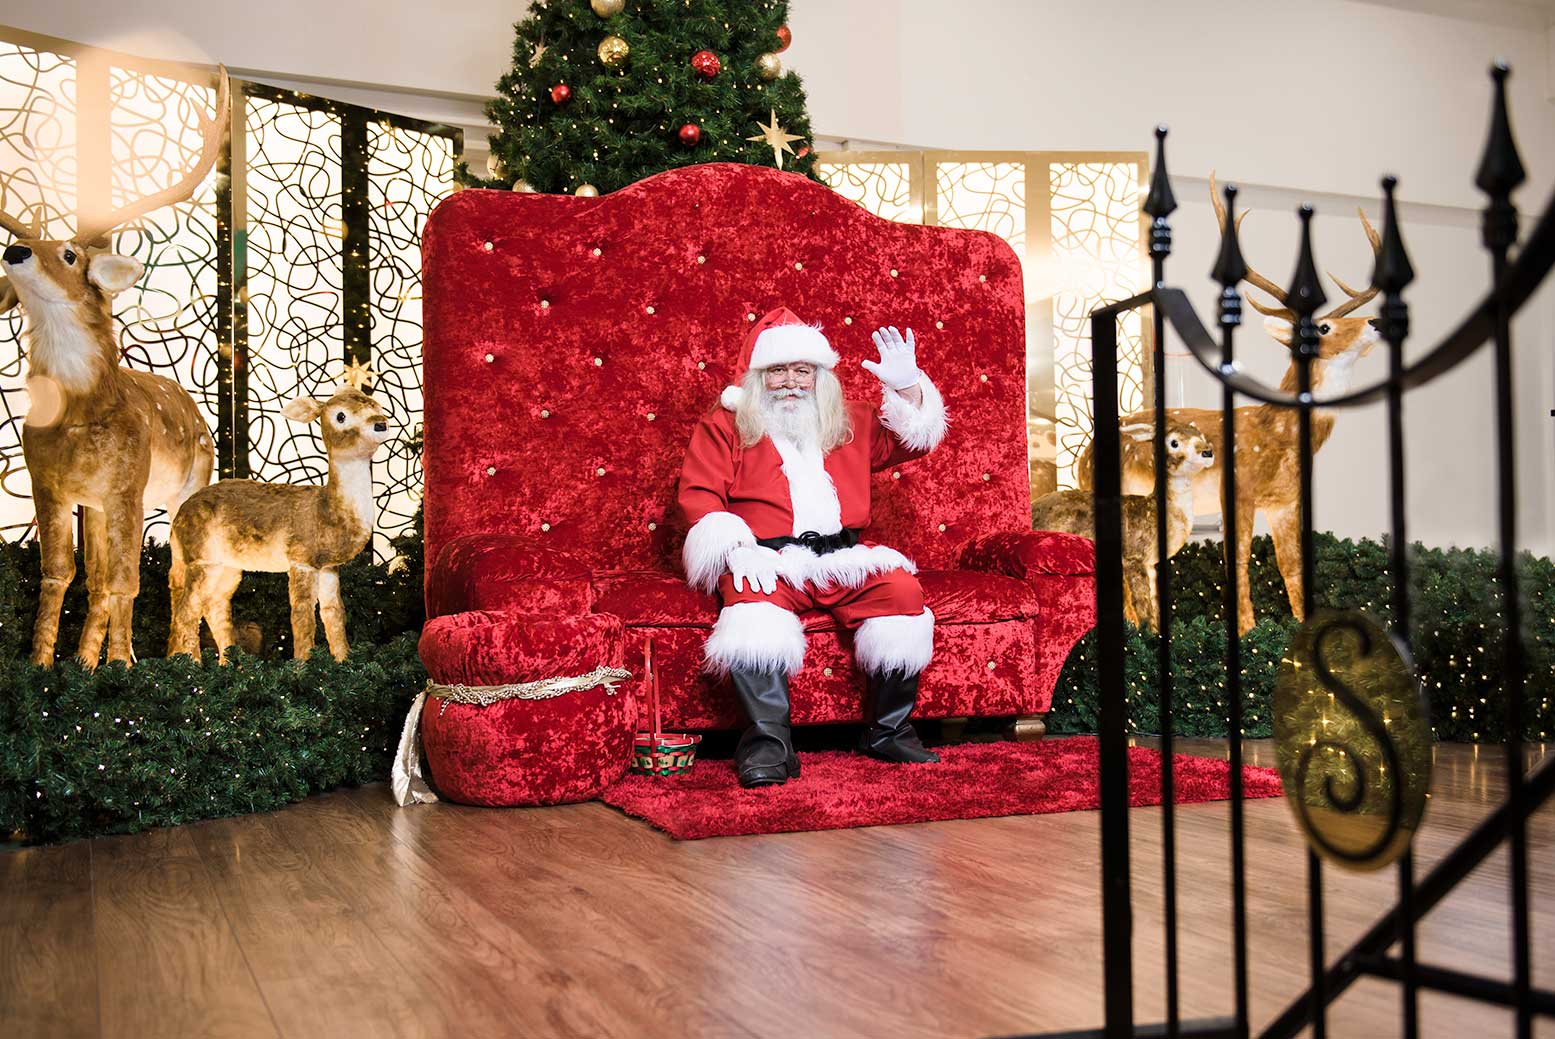 Santa Claus and his reindeer in the Santa Set at Stockland Riverton Shopping Centre